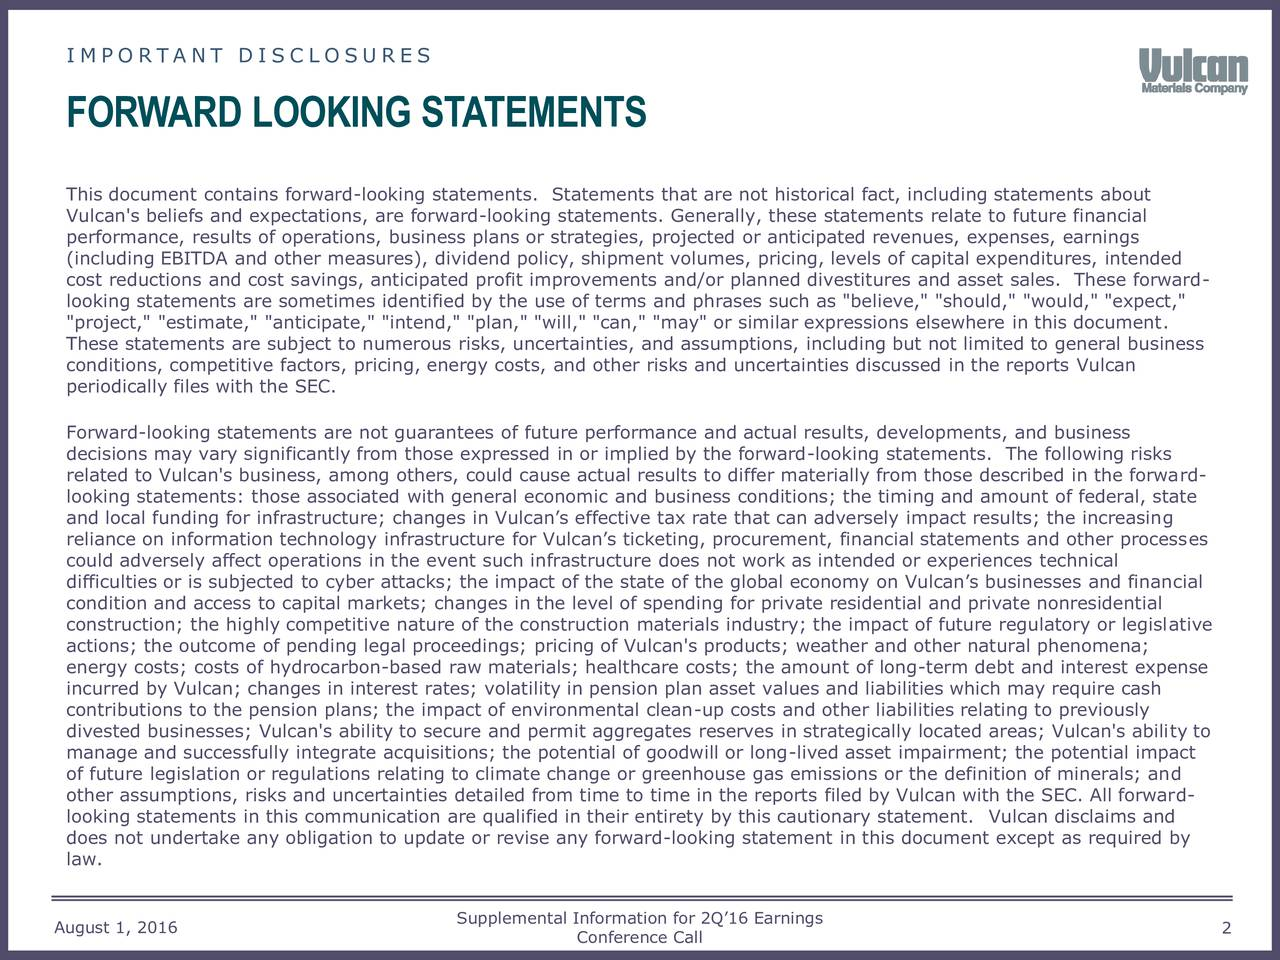 "FORWARD LOOKING STATEMENTS This document contains forward-looking statements. Statements that are not historical fact, including statements about Vulcan's beliefs and expectations, are forward-looking statements. Generally, these statements relate to future financial performance, results of operations, business plans or strategies, projected or anticipated revenues, expenses, earnings (including EBITDA and other measures), dividend policy, shipment volumes, pricing, levels of capital expenditures, intended cost reductions and cost savings, anticipated profit improvements and/or planned divestitures and asset sales. These forward- looking statements are sometimes identified by the use of terms and phrases such as ""believe,"" ""should,"" ""would,"" ""expect,"" ""project,"" ""estimate,"" ""anticipate,"" ""intend,"" ""plan,"" ""will,"" ""can,"" ""may"" or similar expressions elsewhere in this document. These statements are subject to numerous risks, uncertainties, and assumptions, including but not limited to general business conditions, competitive factors, pricing, energy costs, and other risks and uncertainties discussed in the reports Vulcan periodically files with the SEC. Forward-looking statements are not guarantees of future performance and actual results, developments, and business decisions may vary significantly from those expressed in or implied by the forward-looking statements. The following risks related to Vulcan's business, among others, could cause actual results to differ materially from those described in the forward- looking statements: those associated with general economic and business conditions; the timing and amount of federal, state and local funding for infrastructure; changes in Vulcans effective tax rate that can adversely impact results; the increasing reliance on information technology infrastructure for Vulcans ticketing, procurement, financial statements and other processes could adversely affect operations in the event such infrastructure does not work as intended or experiences technical difficulties or is subjected to cyber attacks; the impact of the state of the global economy on Vulcans businesses and financial condition and access to capital markets; changes in the level of spending for private residential and private nonresidential construction; the highly competitive nature of the construction materials industry; the impact of future regulatory or legislative actions; the outcome of pending legal proceedings; pricing of Vulcan's products; weather and other natural phenomena; energy costs; costs of hydrocarbon-based raw materials; healthcare costs; the amount of long-term debt and interest expense incurred by Vulcan; changes in interest rates; volatility in pension plan asset values and liabilities which may require cash contributions to the pension plans; the impact of environmental clean-up costs and other liabilities relating to previously divested businesses; Vulcan's ability to secure and permit aggregates reserves in strategically located areas; Vulcan's ability to manage and successfully integrate acquisitions; the potential of goodwill or long-lived asset impairment; the potential impact of future legislation or regulations relating to climate change or greenhouse gas emissions or the definition of minerals; and other assumptions, risks and uncertainties detailed from time to time in the reports filed by Vulcan with the SEC. All forward- looking statements in this communication are qualified in their entirety by this cautionary statement. Vulcan disclaims and does not undertake any obligation to update or revise any forward-looking statement in this document except as required by law. August 1, 2016 Supplemental Information for 2Q16 Earnings 2 Conference Call"